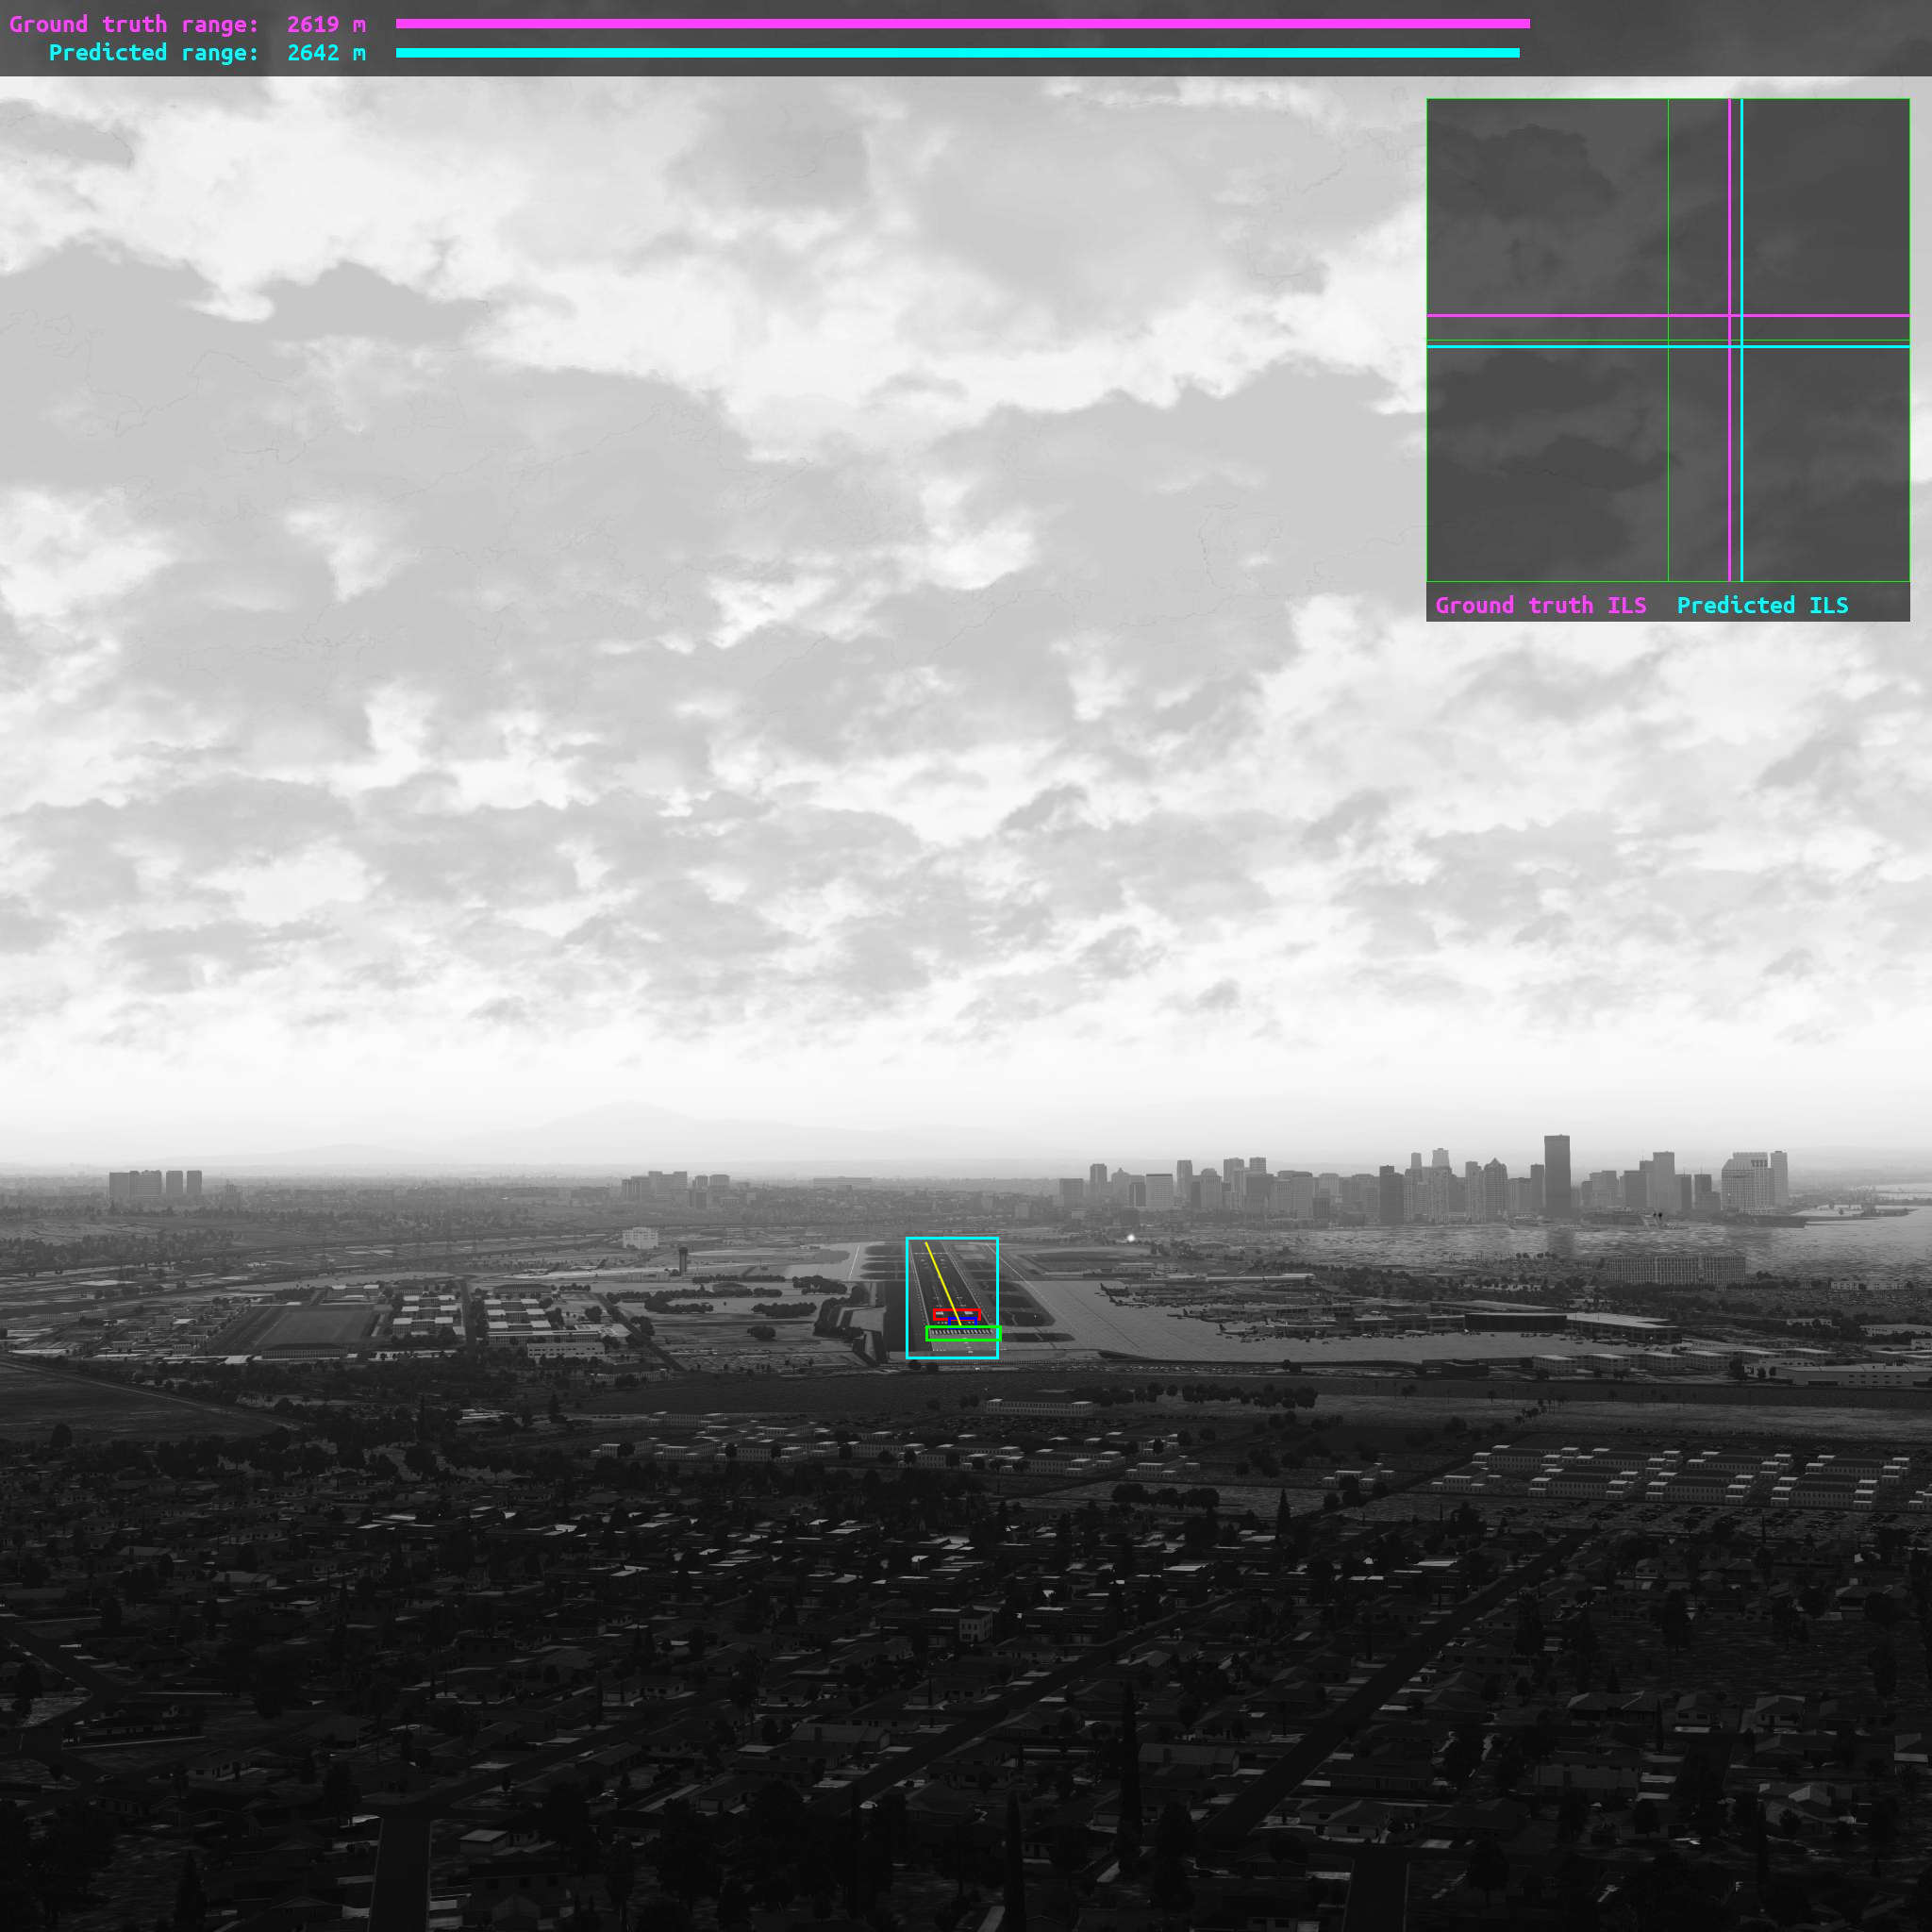 Figure 2: Photorealistic simulation allows Wayfinder to rapidly train and test neural networks on large, scalable, and highly customizable datasets. Here we simulate a forward facing camera on final approach to runway 9 at San Diego International Airport. Our neural network architecture is able to detect runways and runway markings, as well as the remaining distance to the runway and vertical and lateral deviations from the nominal approach flight path.